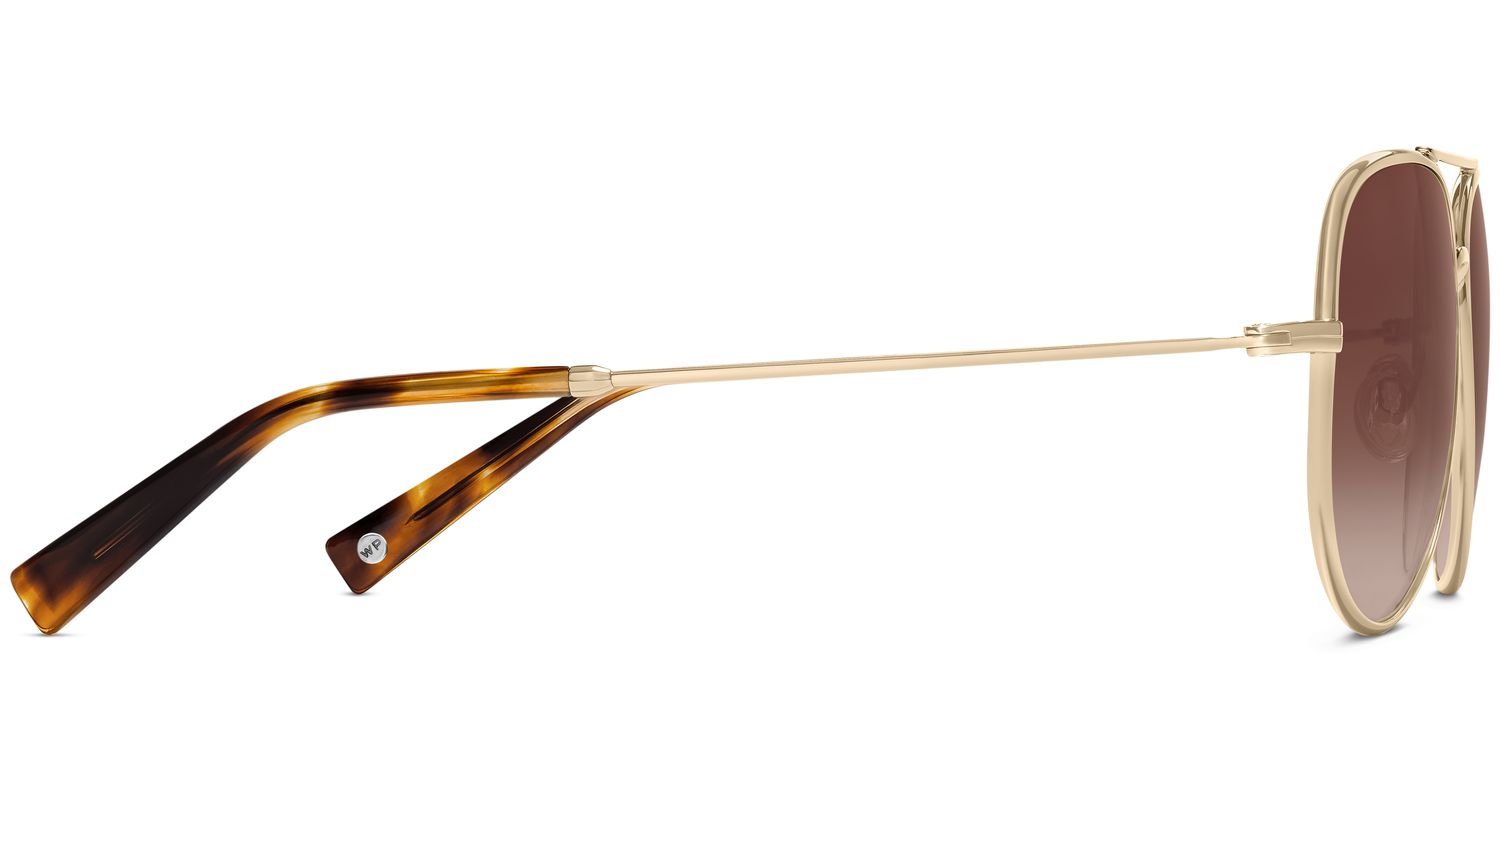 Raider Sunglasses in Polished Gold